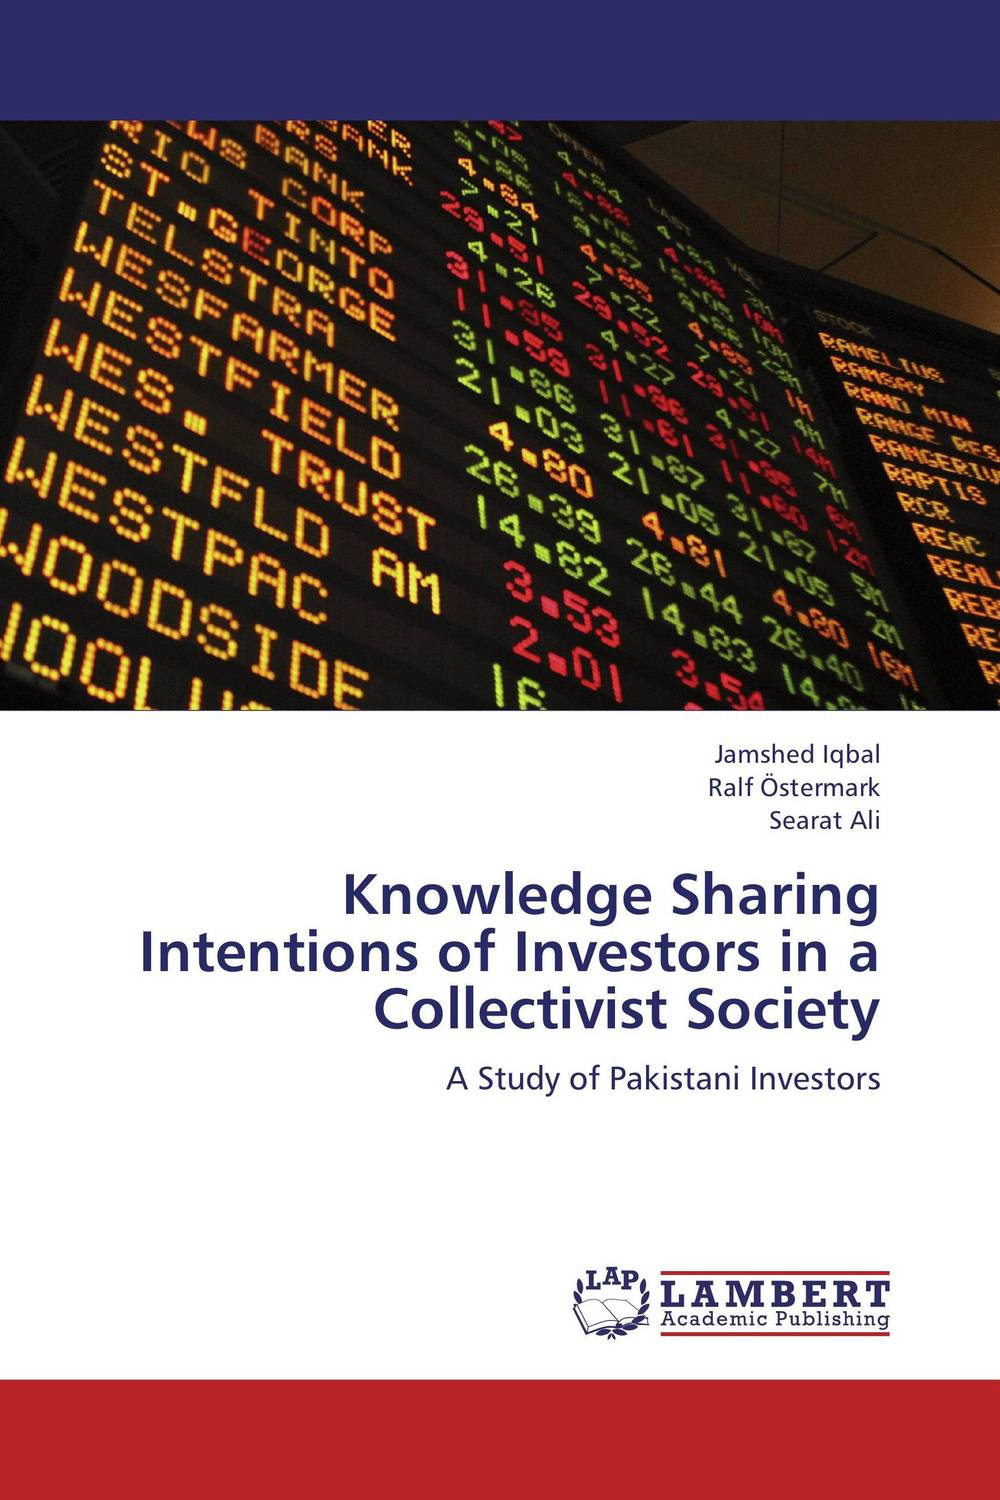 Knowledge Sharing Intentions of Investors in a Collectivist Society